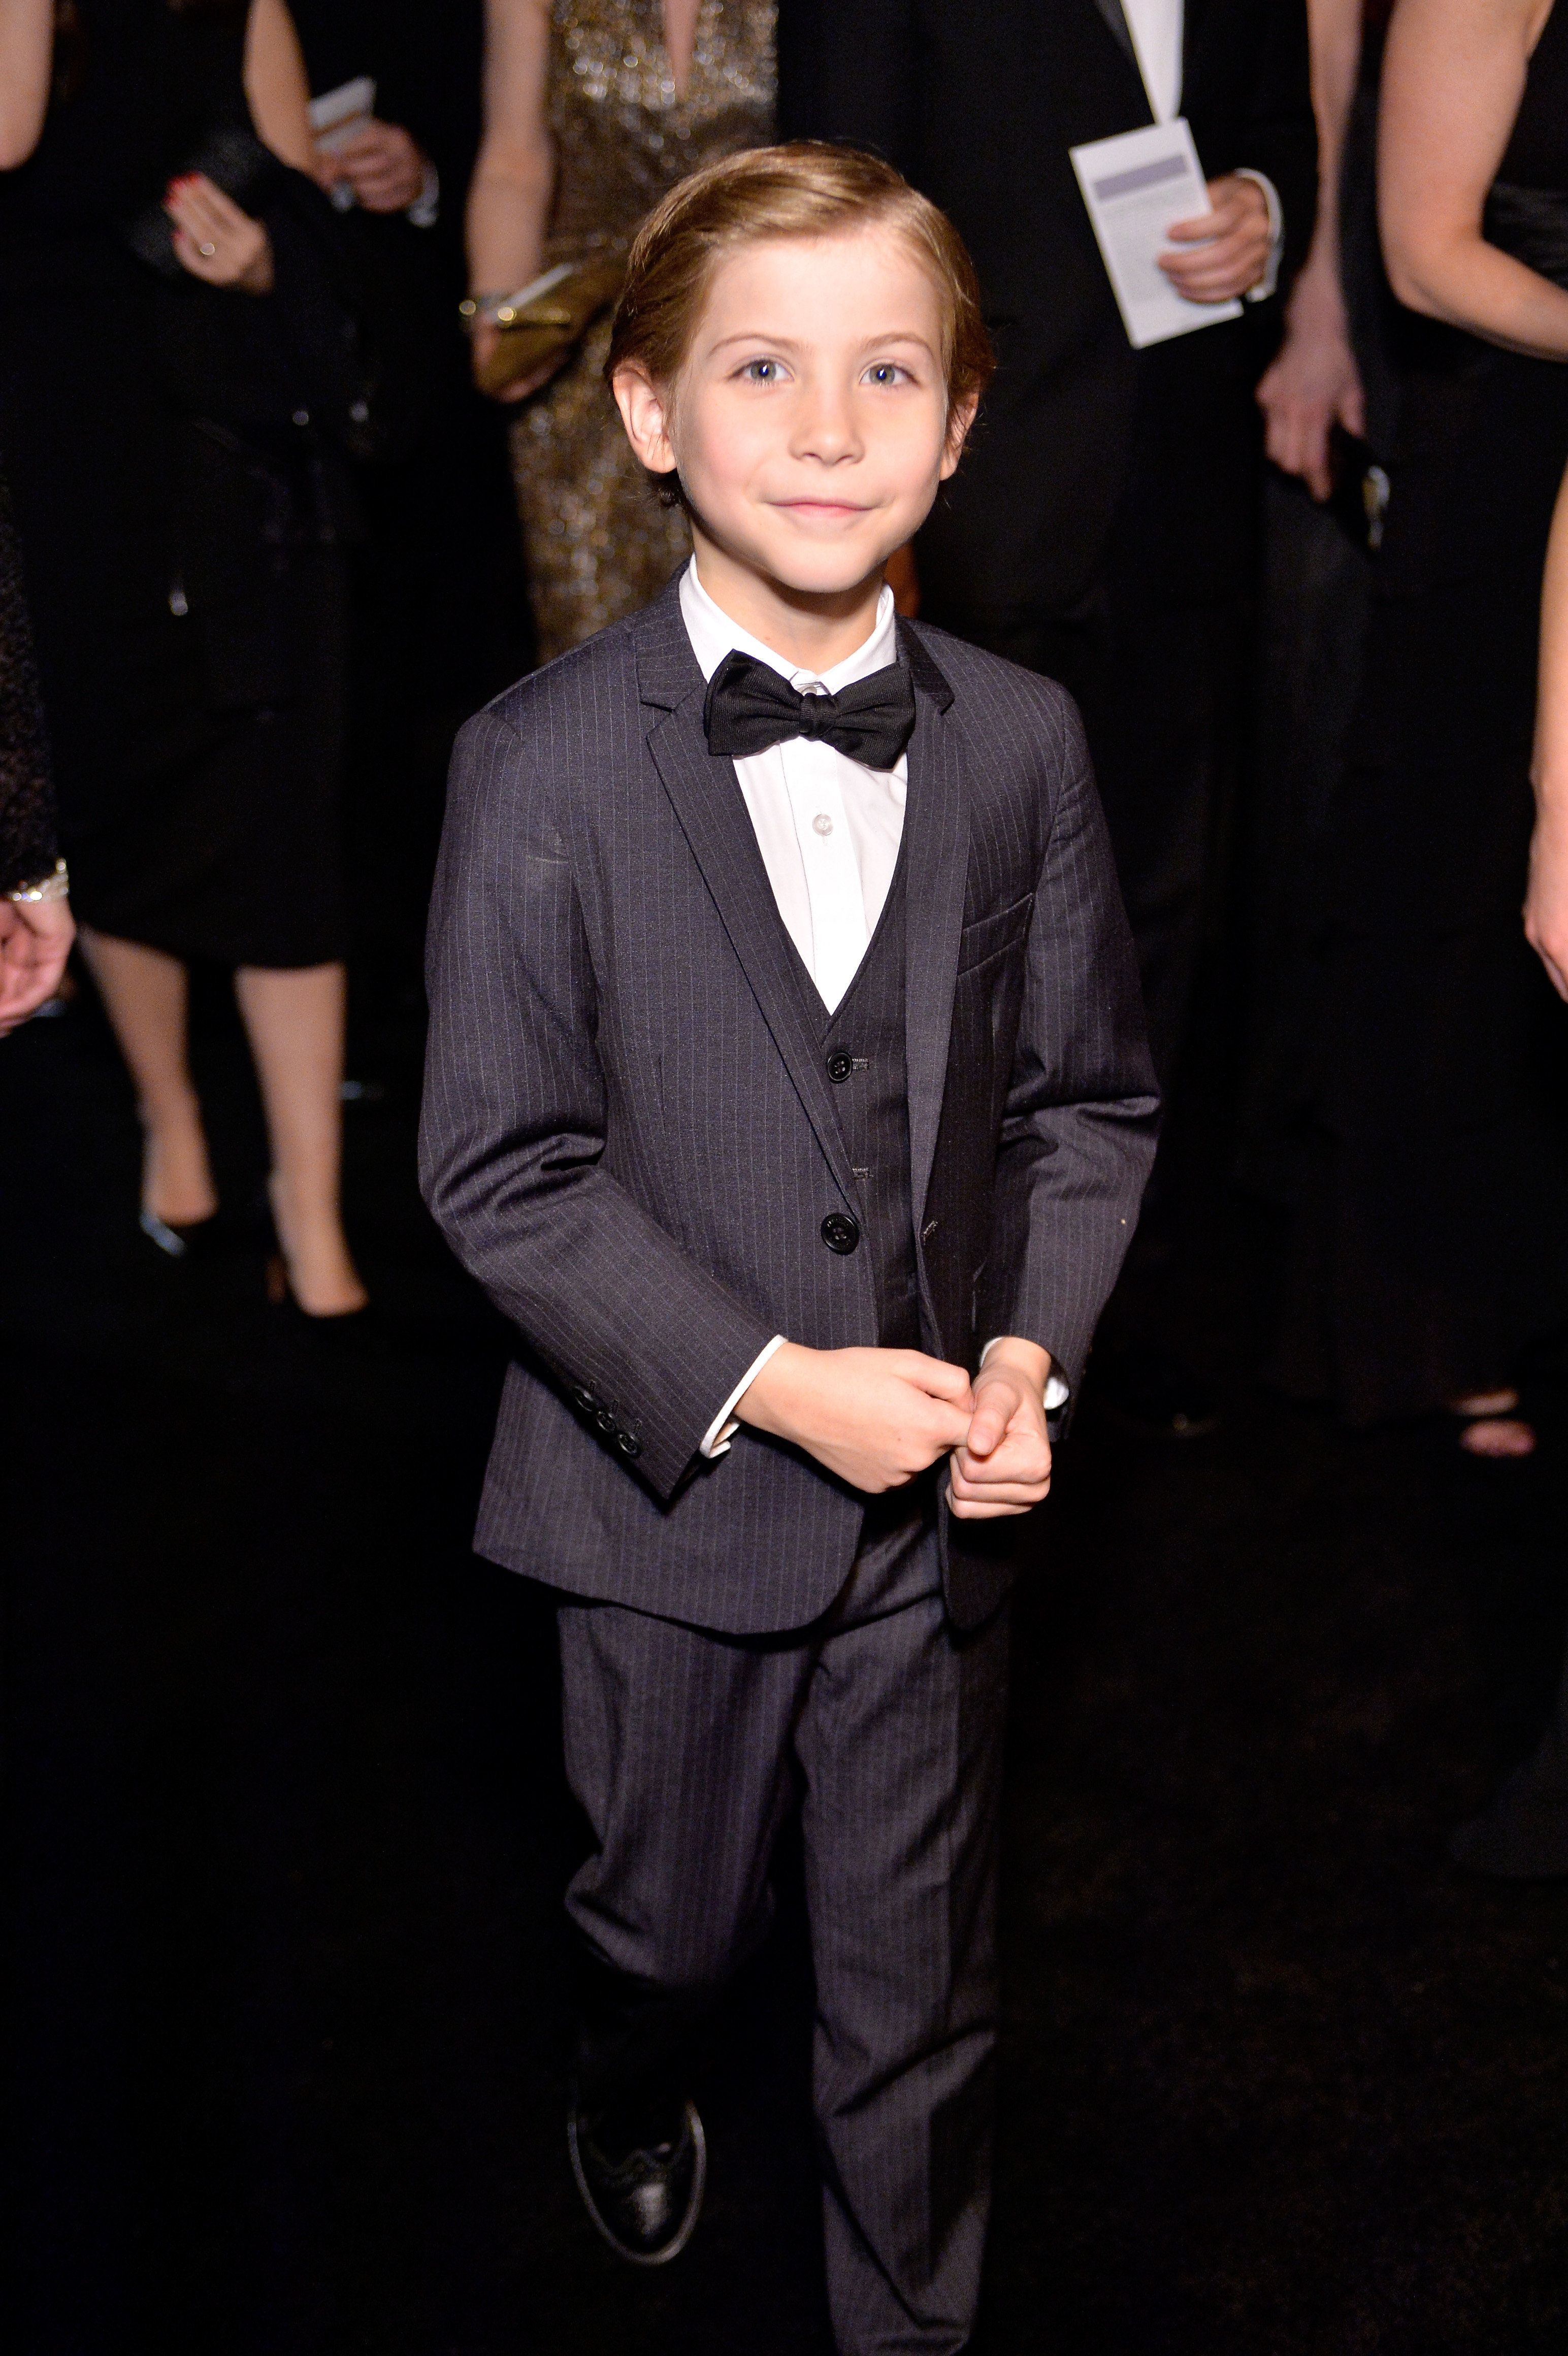 LOS ANGELES, CA - JANUARY 30:  Actor Jacob Tremblay attends The 22nd Annual Screen Actors Guild Awards at The Shrine Auditorium on January 30, 2016 in Los Angeles, California. 25650_016  (Photo by Stefanie Keenan/Getty Images for Turner)